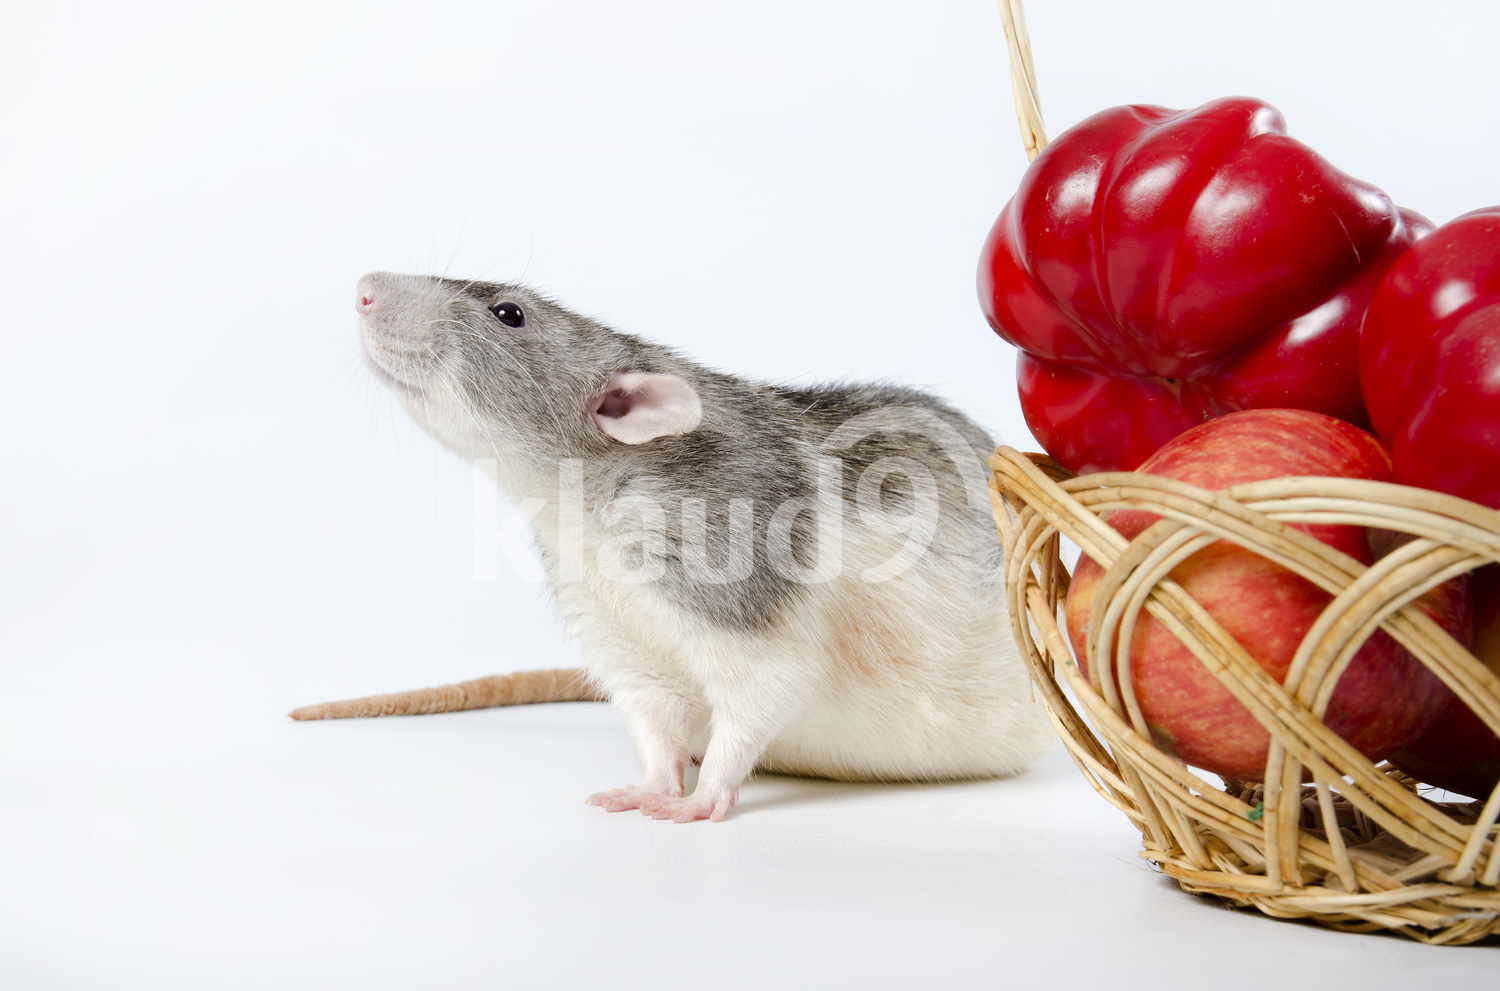 Rat and wicker Basket